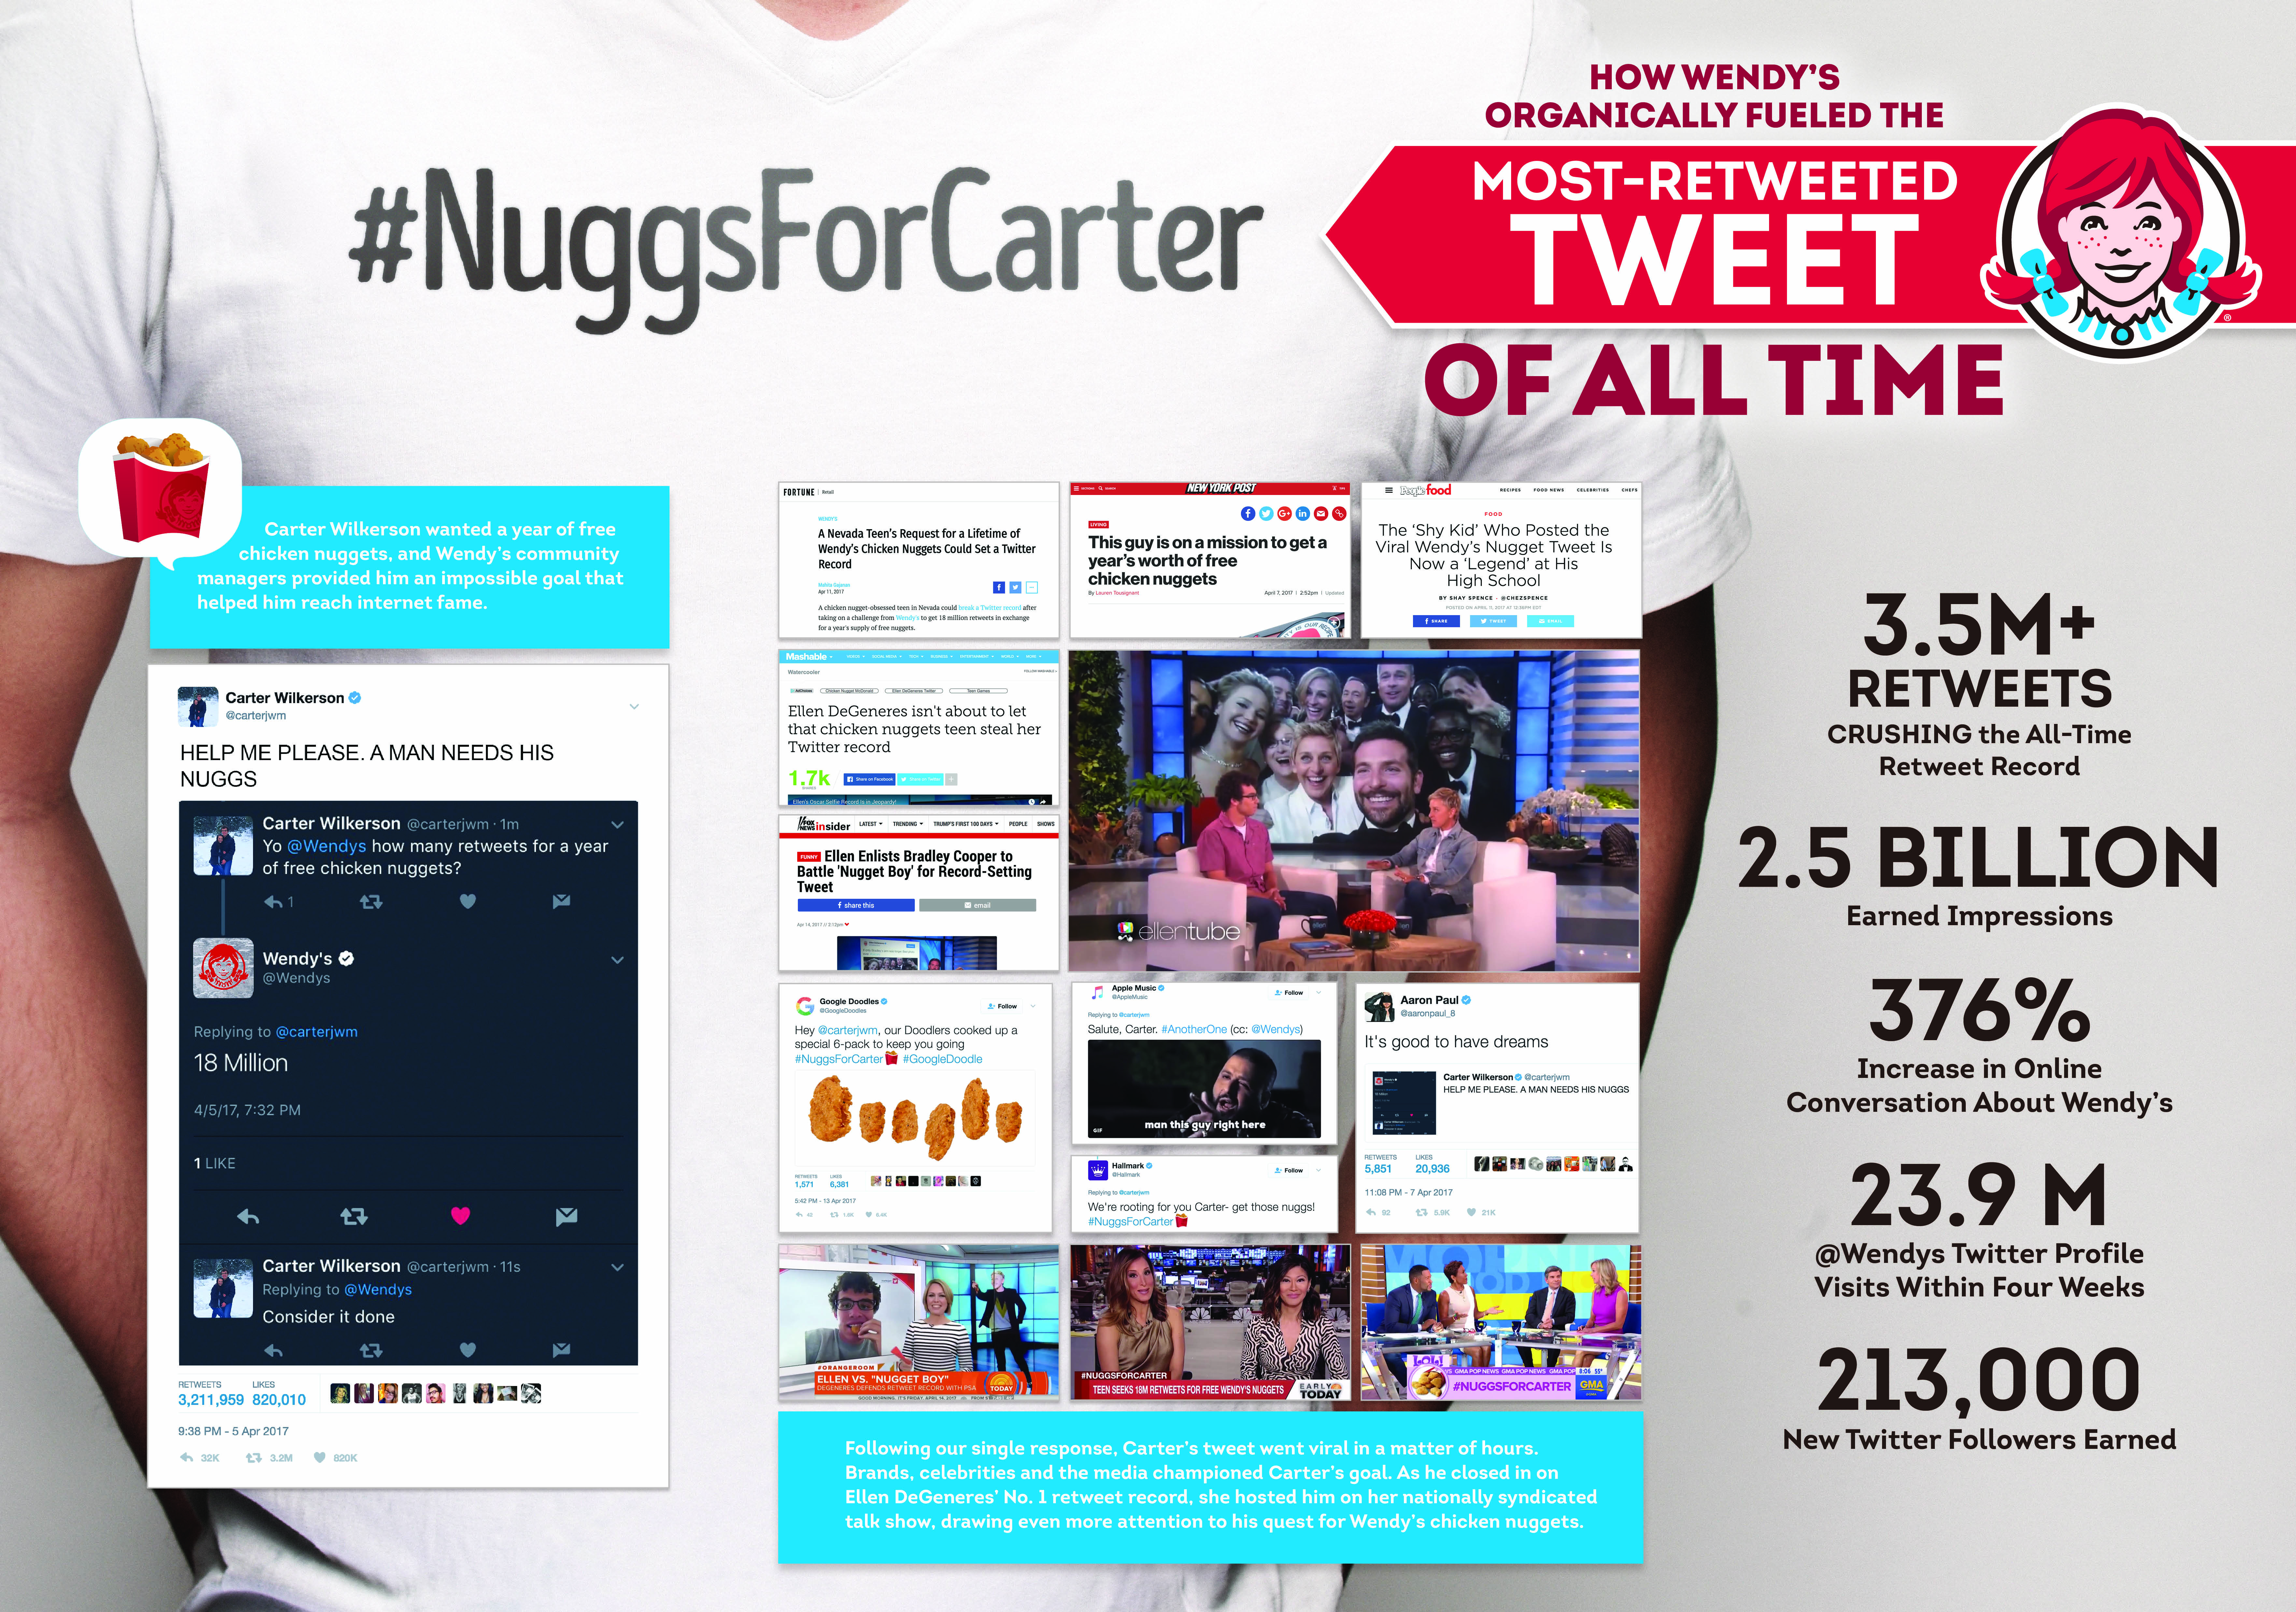 Image Media for #NuggsForCarter